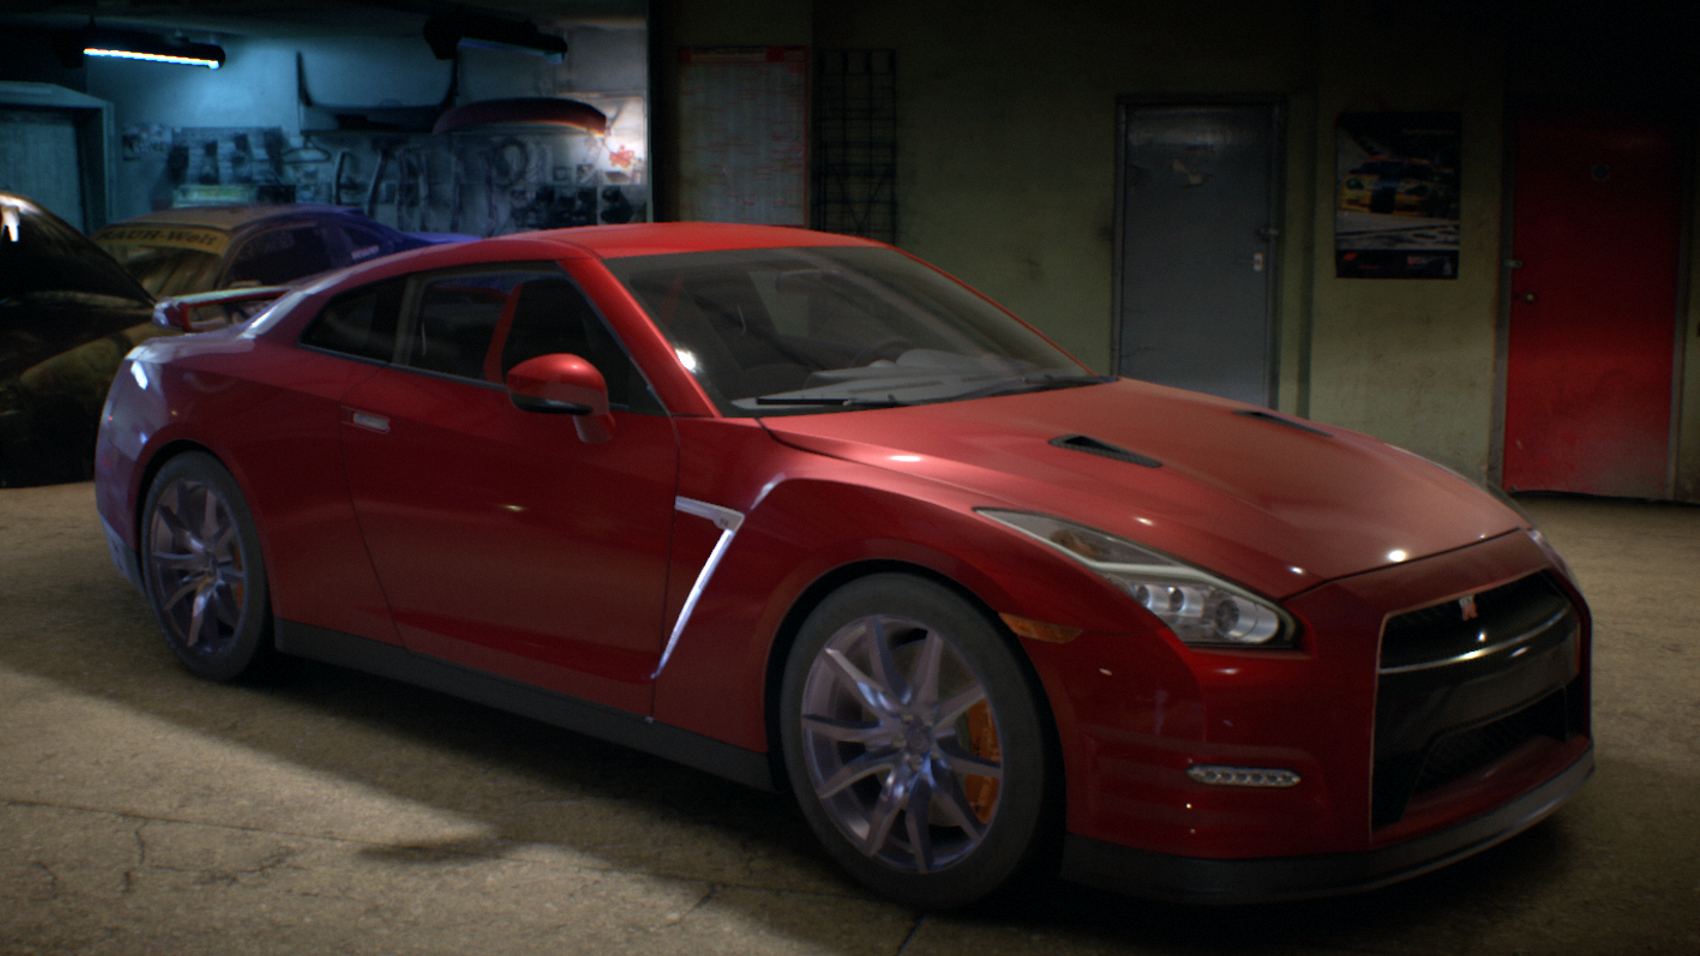 nissan gt r premium 2015 need for speed wiki fandom powered by wikia. Black Bedroom Furniture Sets. Home Design Ideas